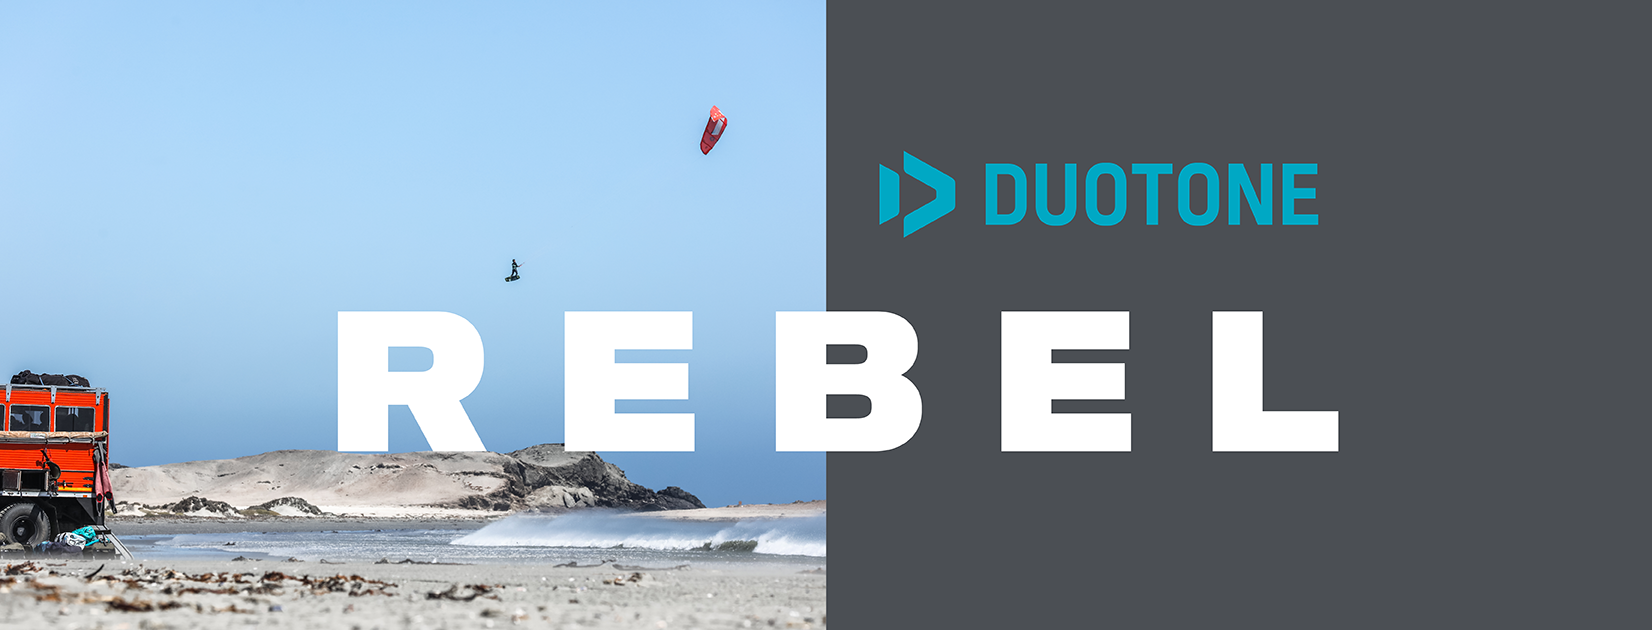 duotone kite rebel 2019